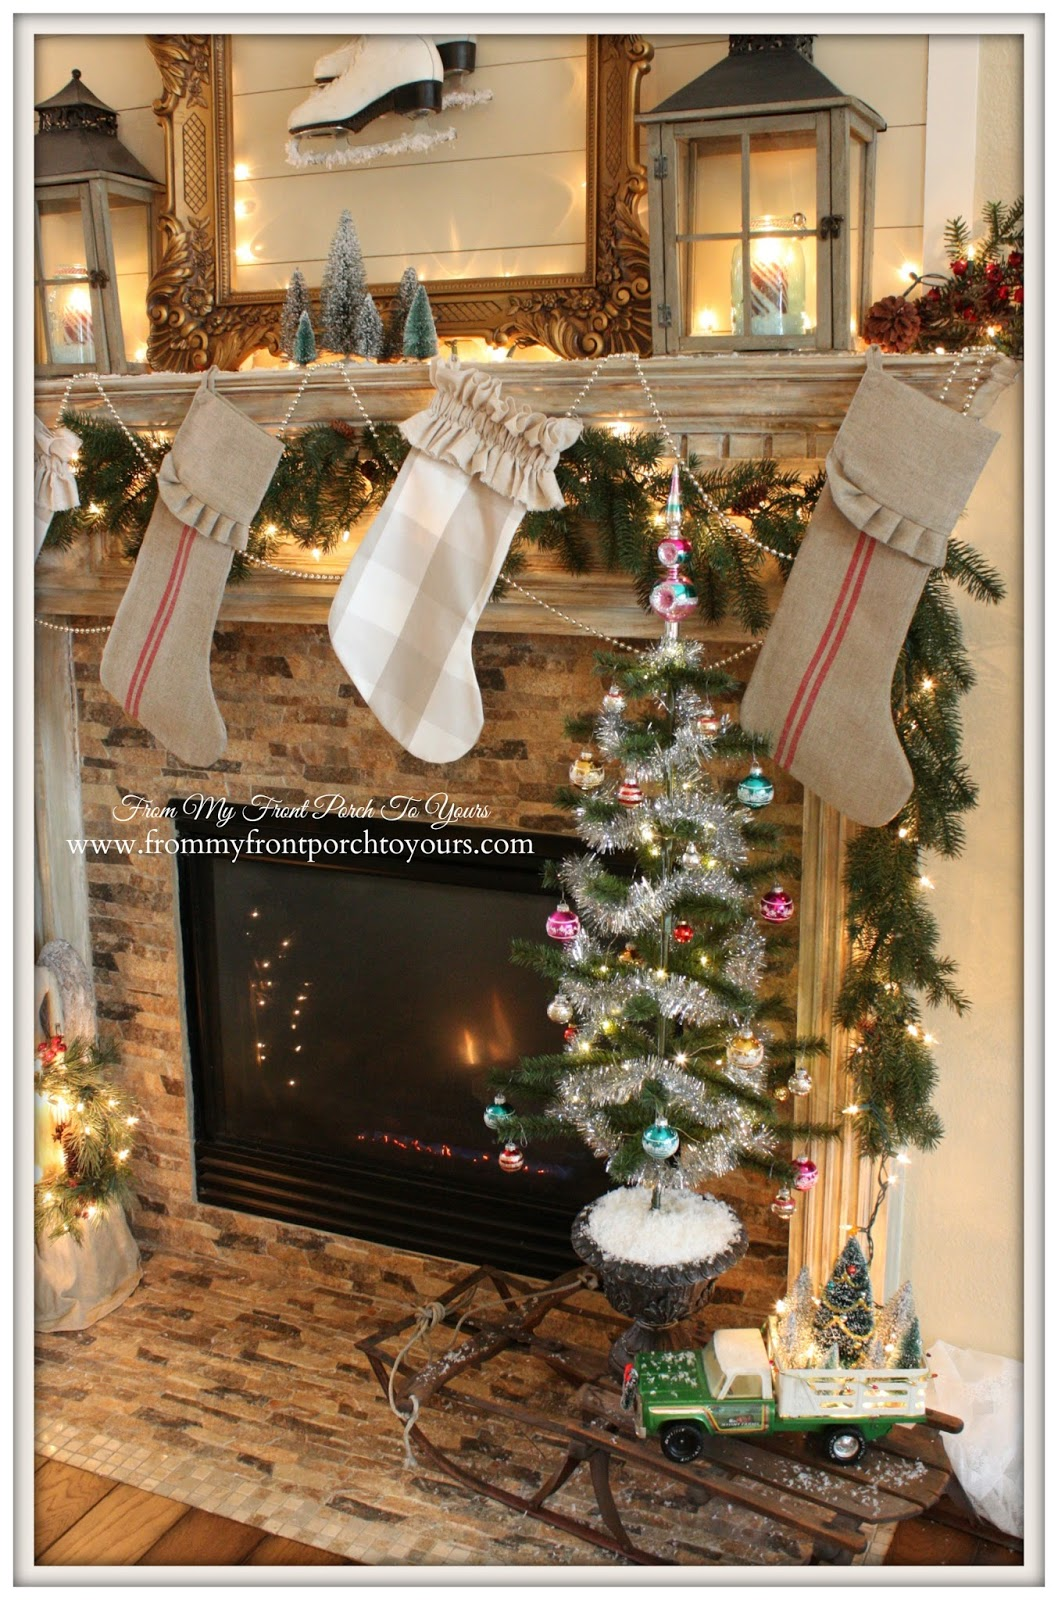 French Farmhouse-French Country- Vintage Christmas Mantel- From My Front Porch To Yours